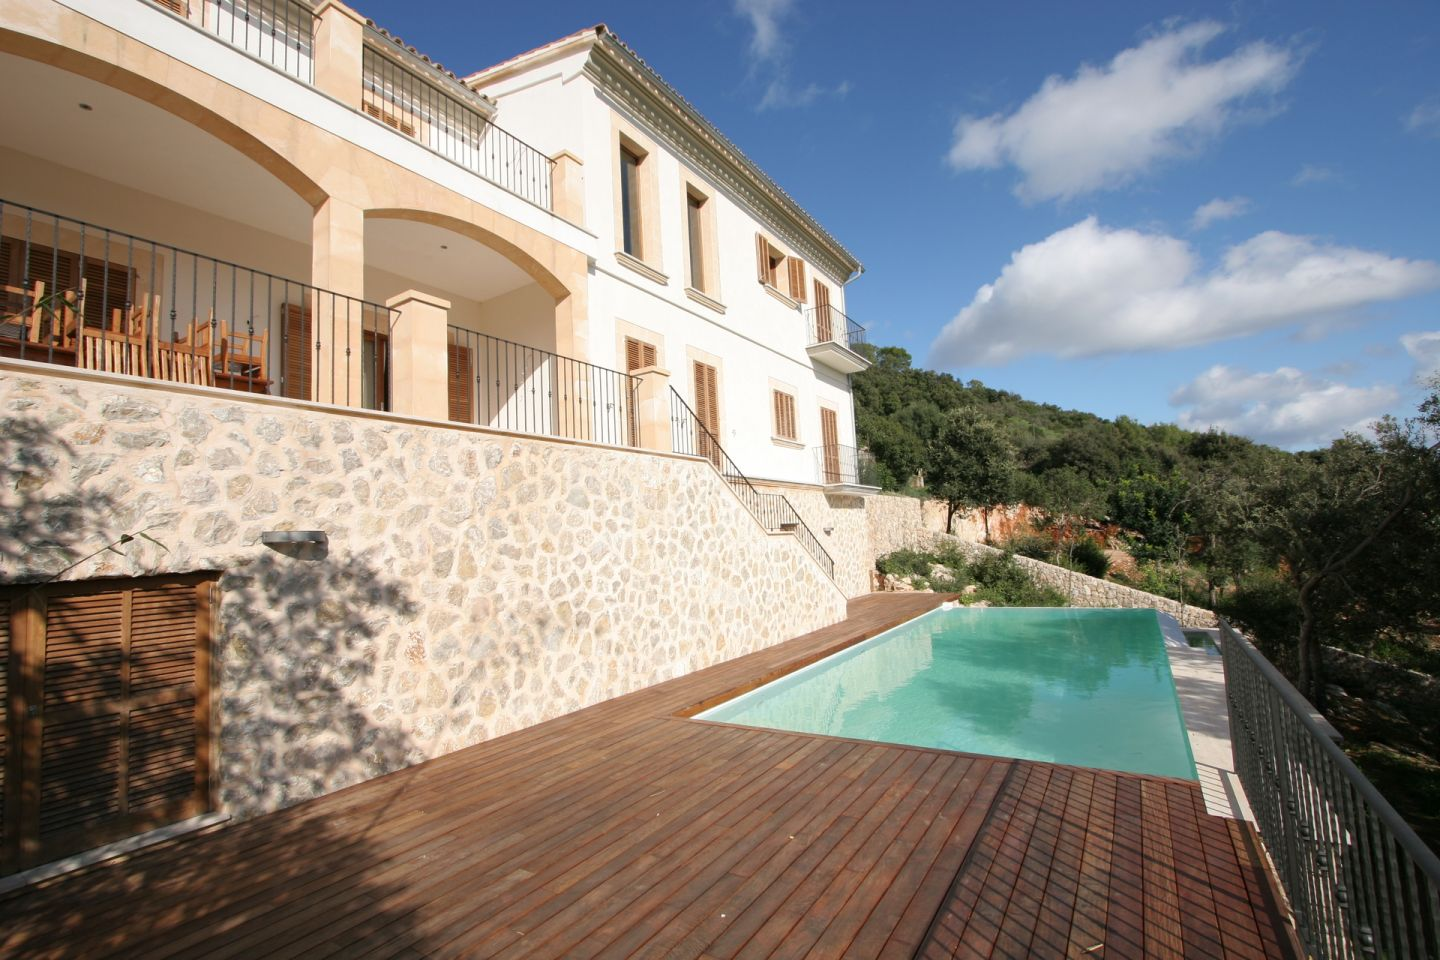 5 Bed Villa for sale in POLLENSA 10